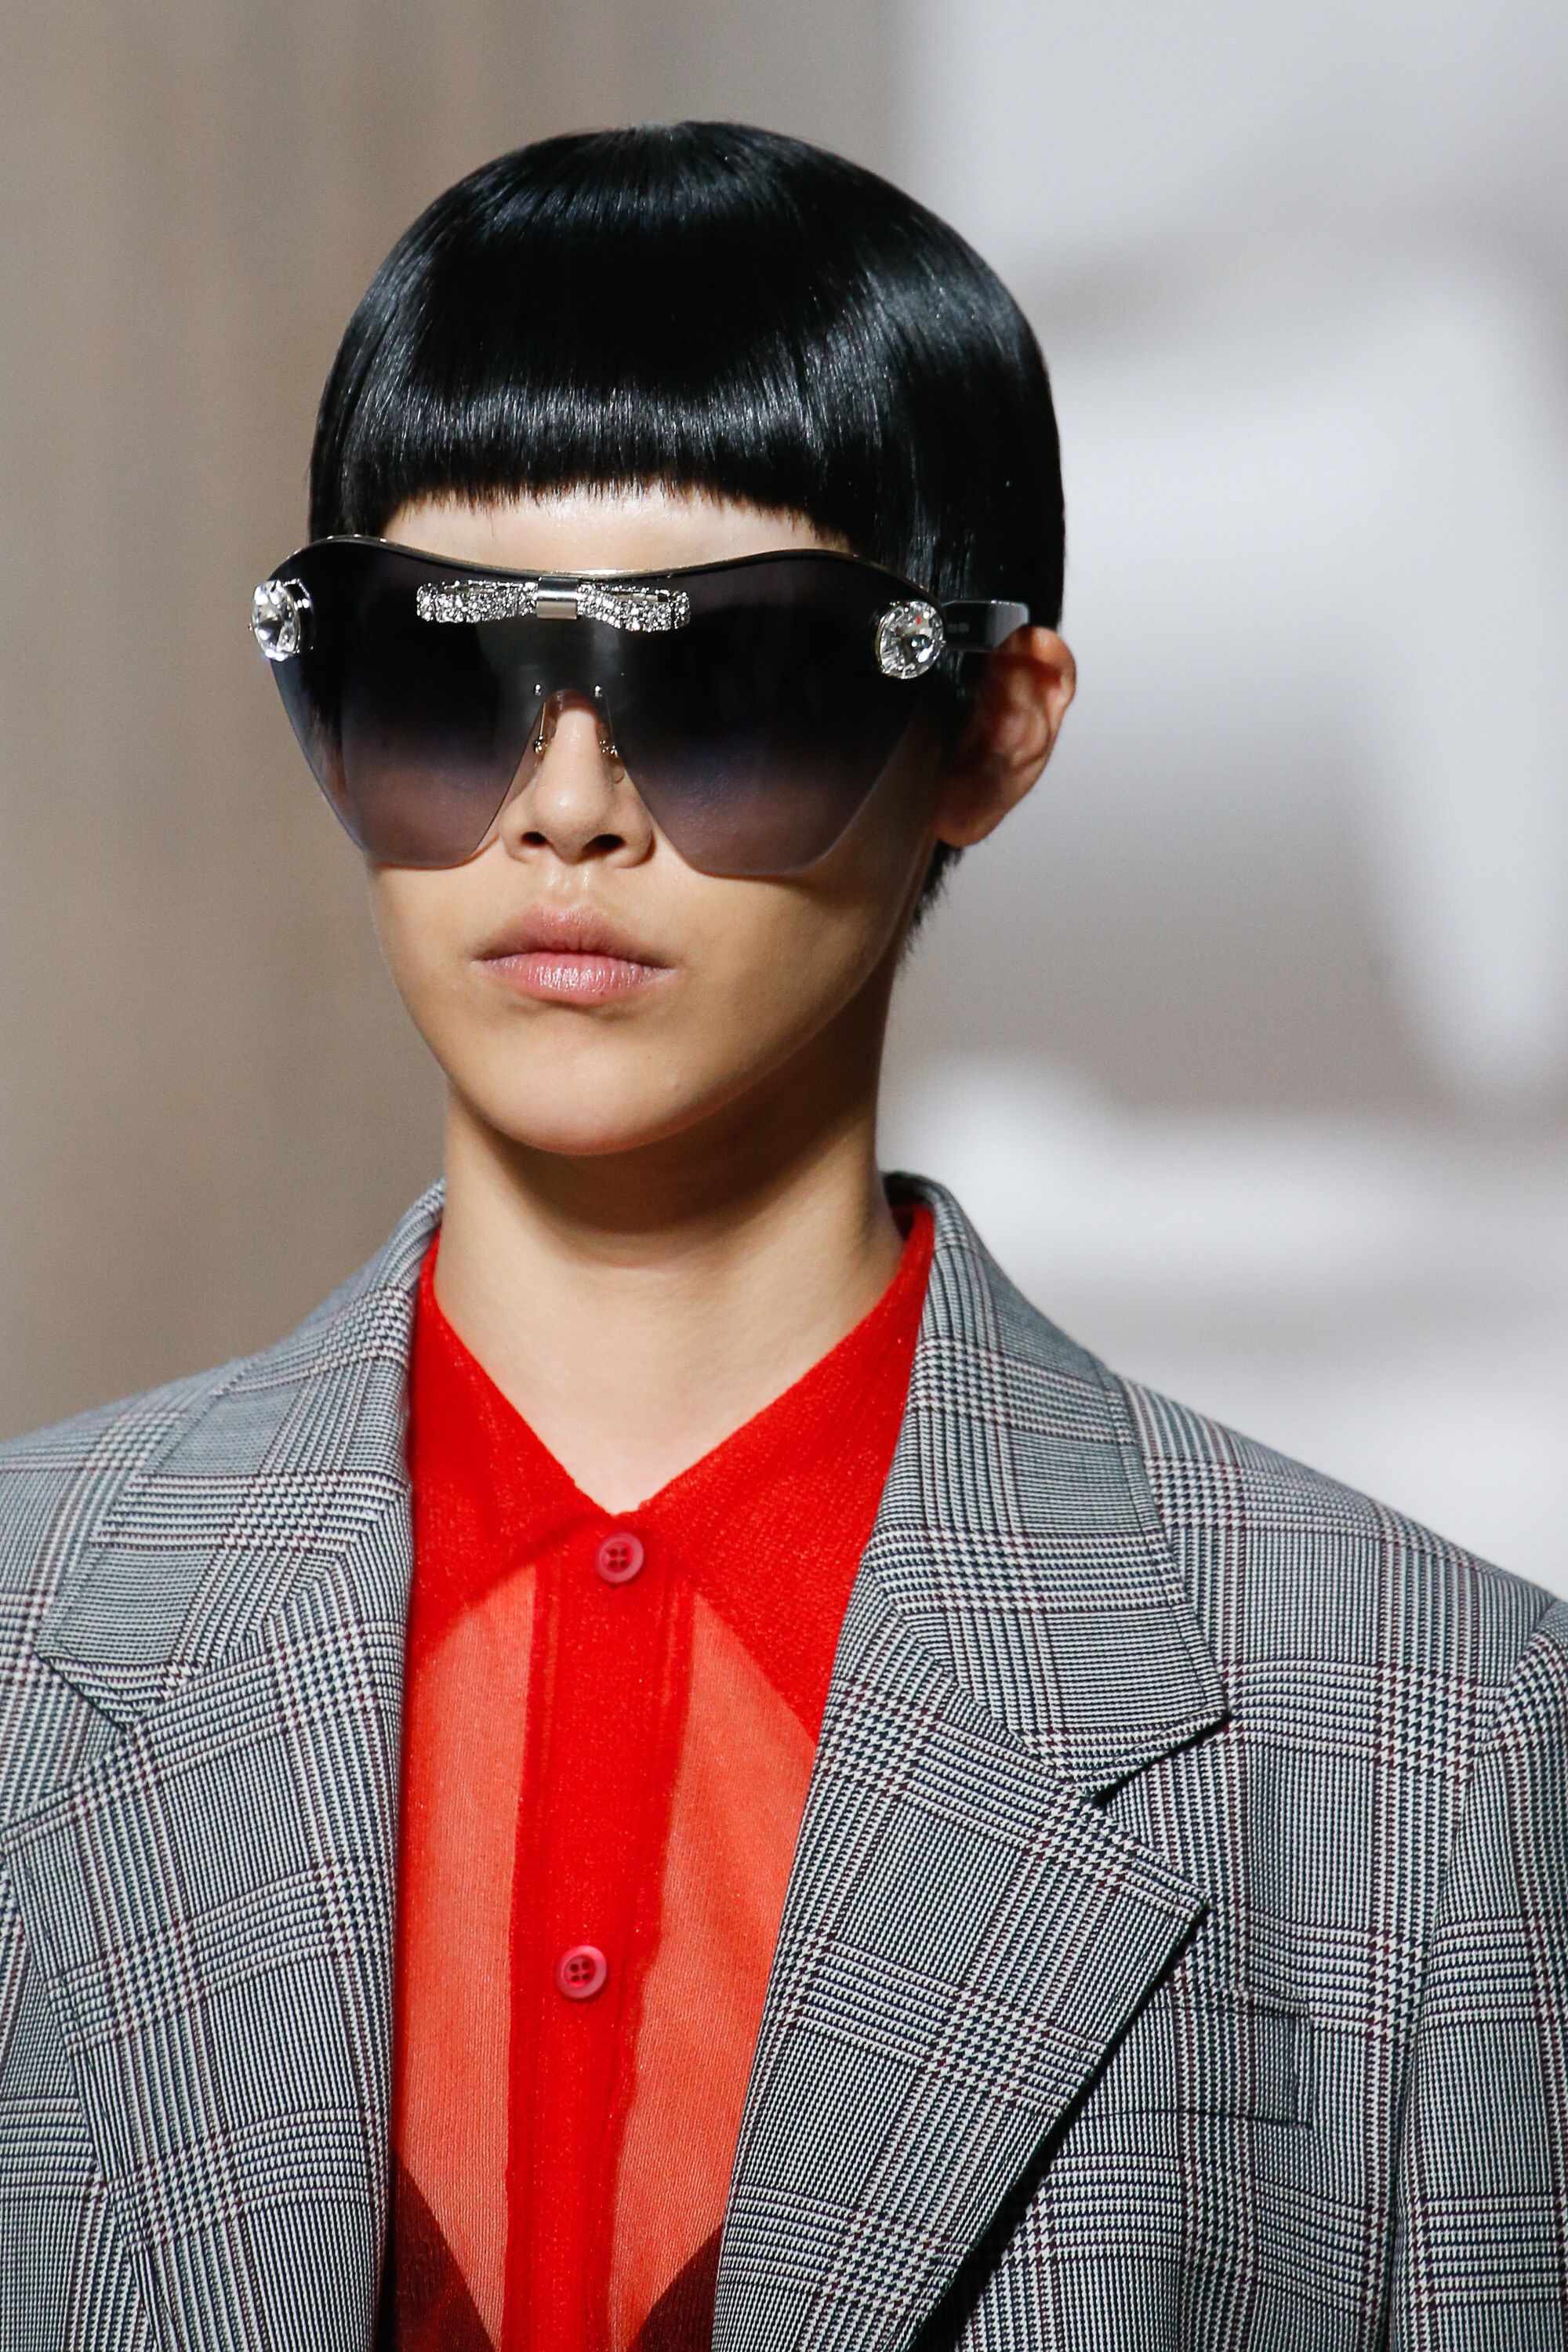 4b177e89e932 Miu Miu Spring 2019 Ready-to-Wear Fashion Show Details  See detail photos  for Miu Miu Spring 2019 Ready-to-Wear collection. Look 27